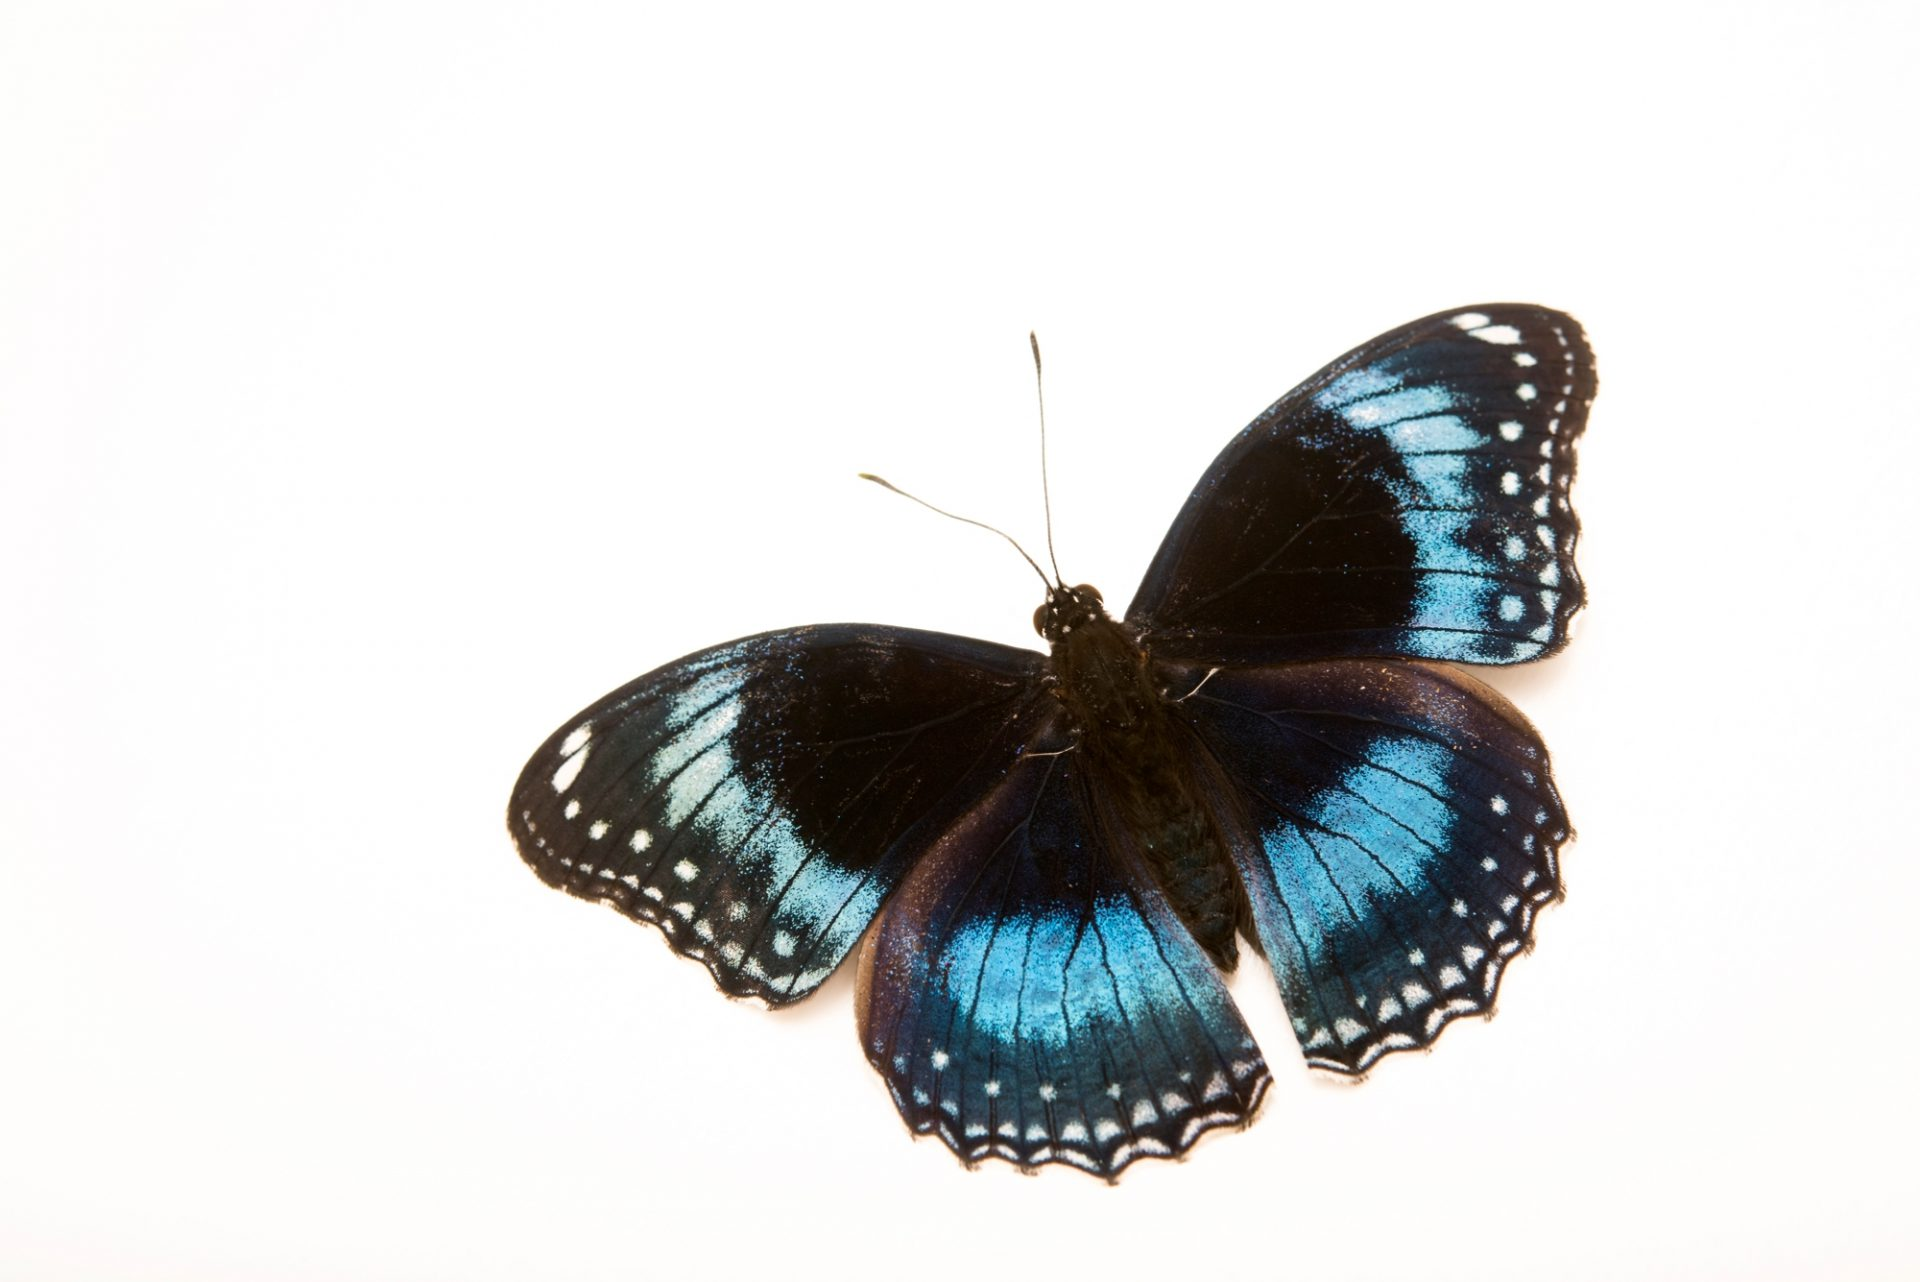 Photo: Blue banded eggfly (Hypolimnas alimena) at Melbourne Zoo.